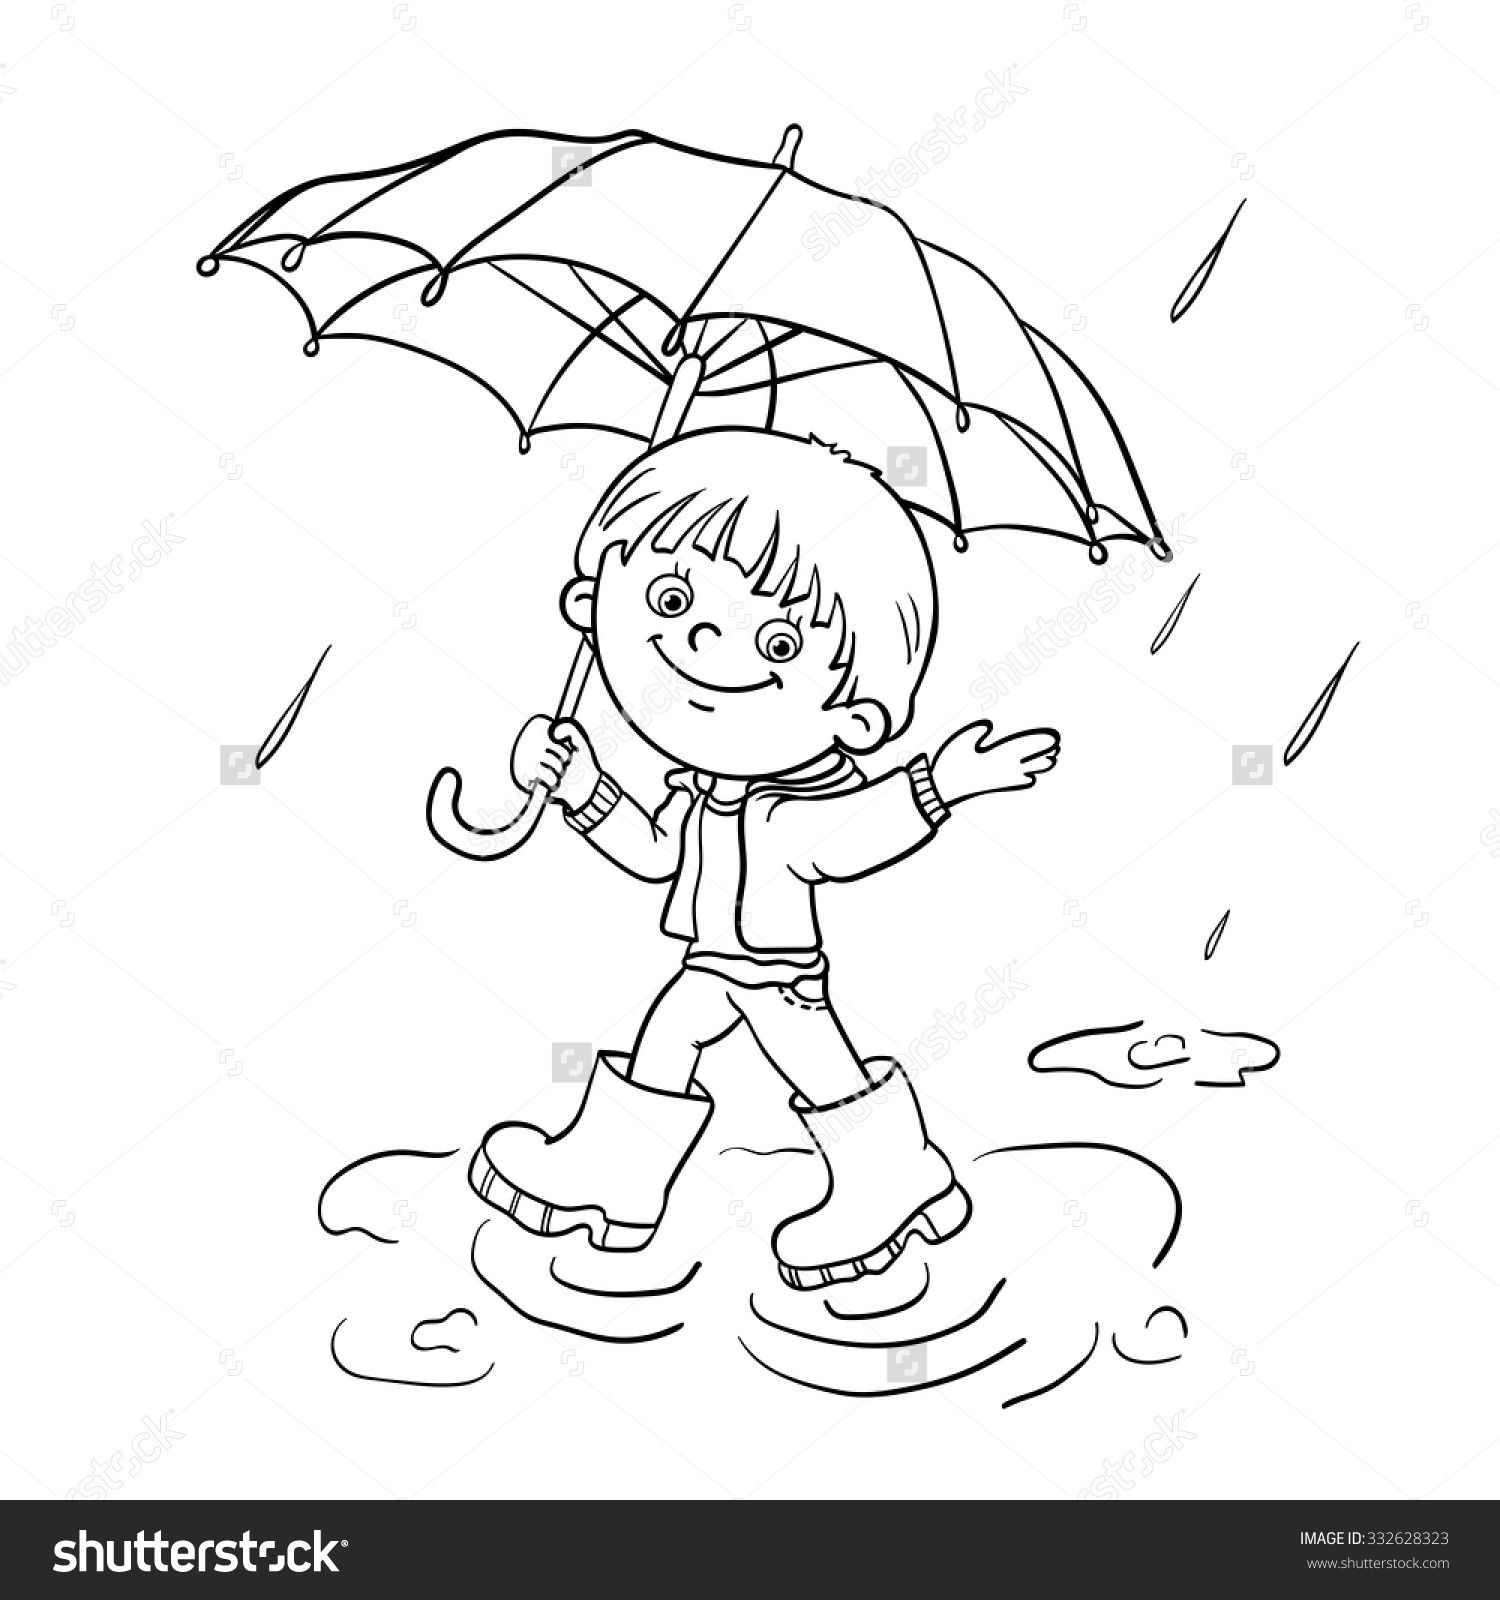 Boy With Umbrella Coloring Page on Coloring Page Of An Umbrella With Raindrops